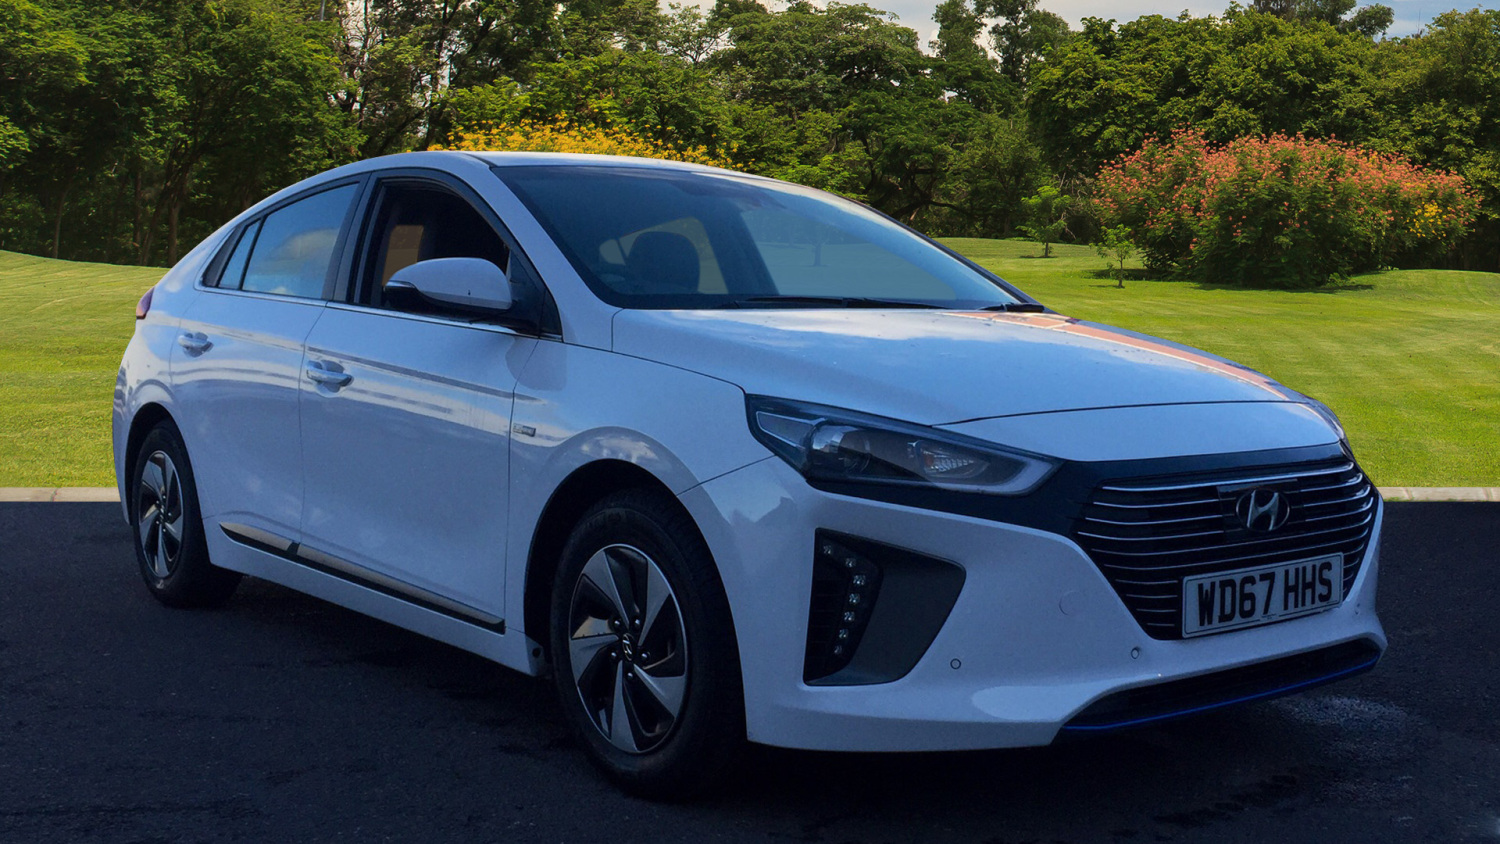 used hyundai ioniq 1 6 gdi hybrid premium se 5dr dct hybrid hatchback for sale in scotland. Black Bedroom Furniture Sets. Home Design Ideas